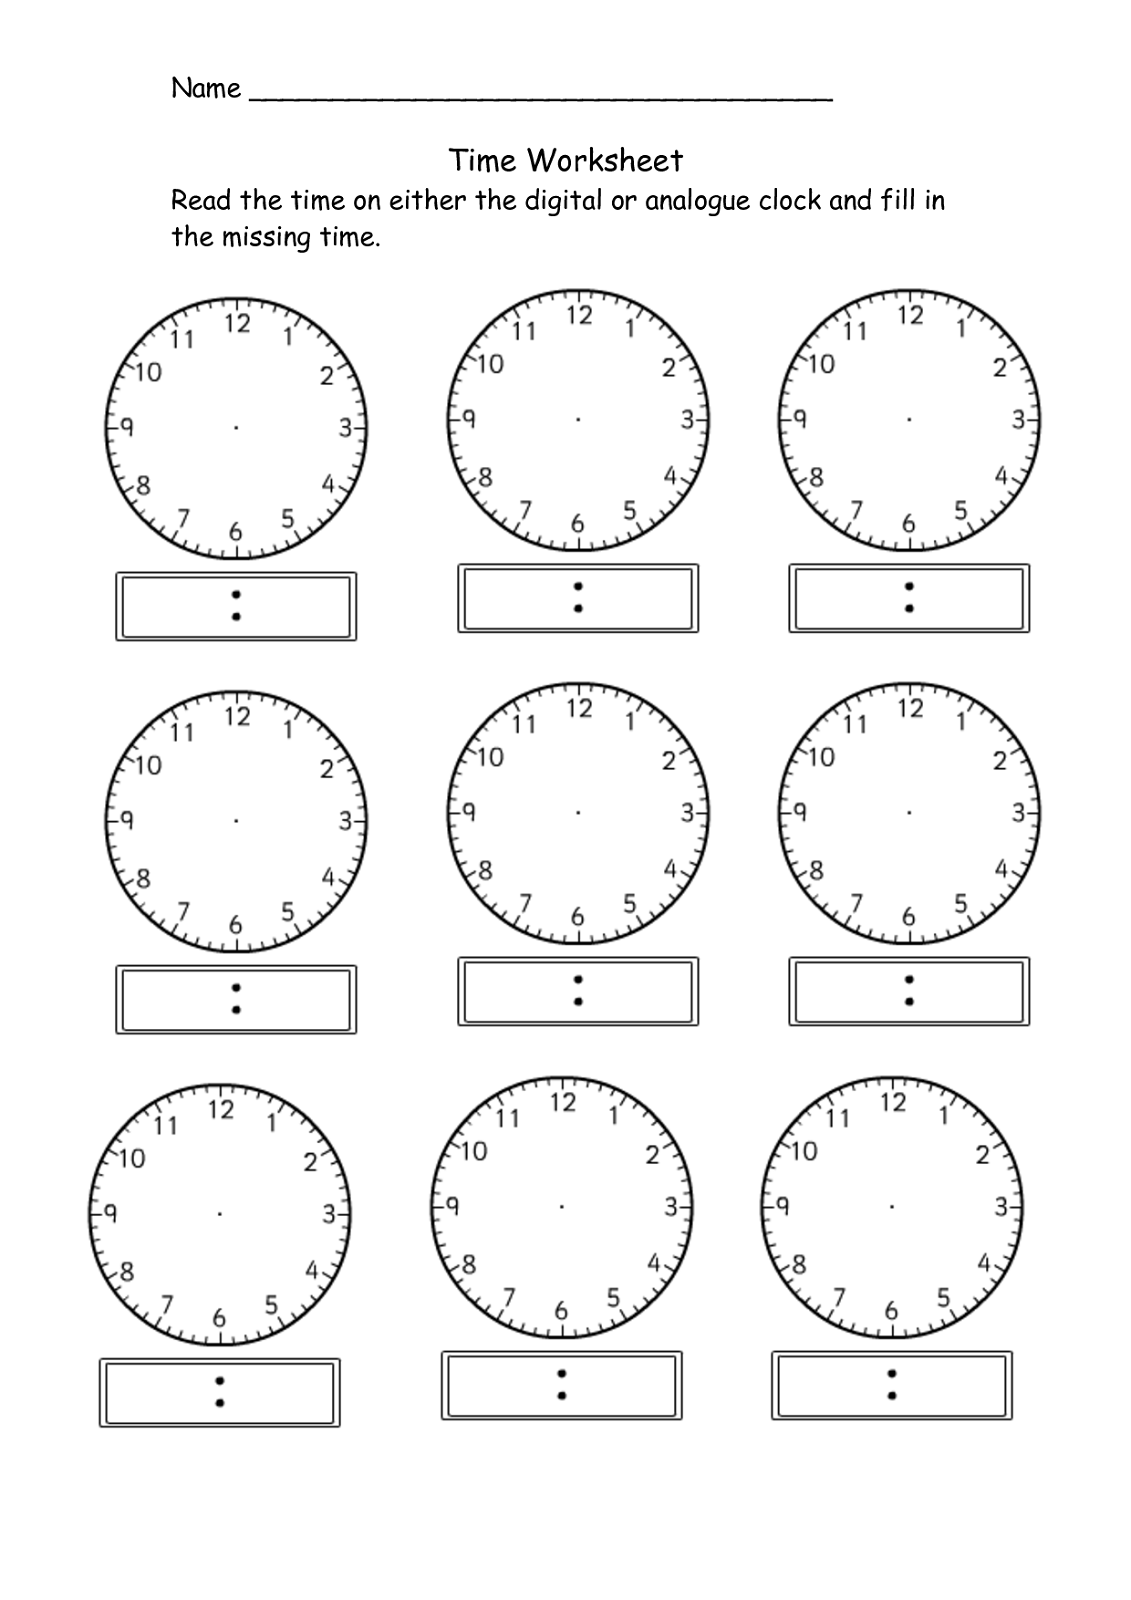 Worksheet Telling Time Worksheets For 1st Grade worksheet 612792 telling time math worksheets first grade for kids teachers worksheets